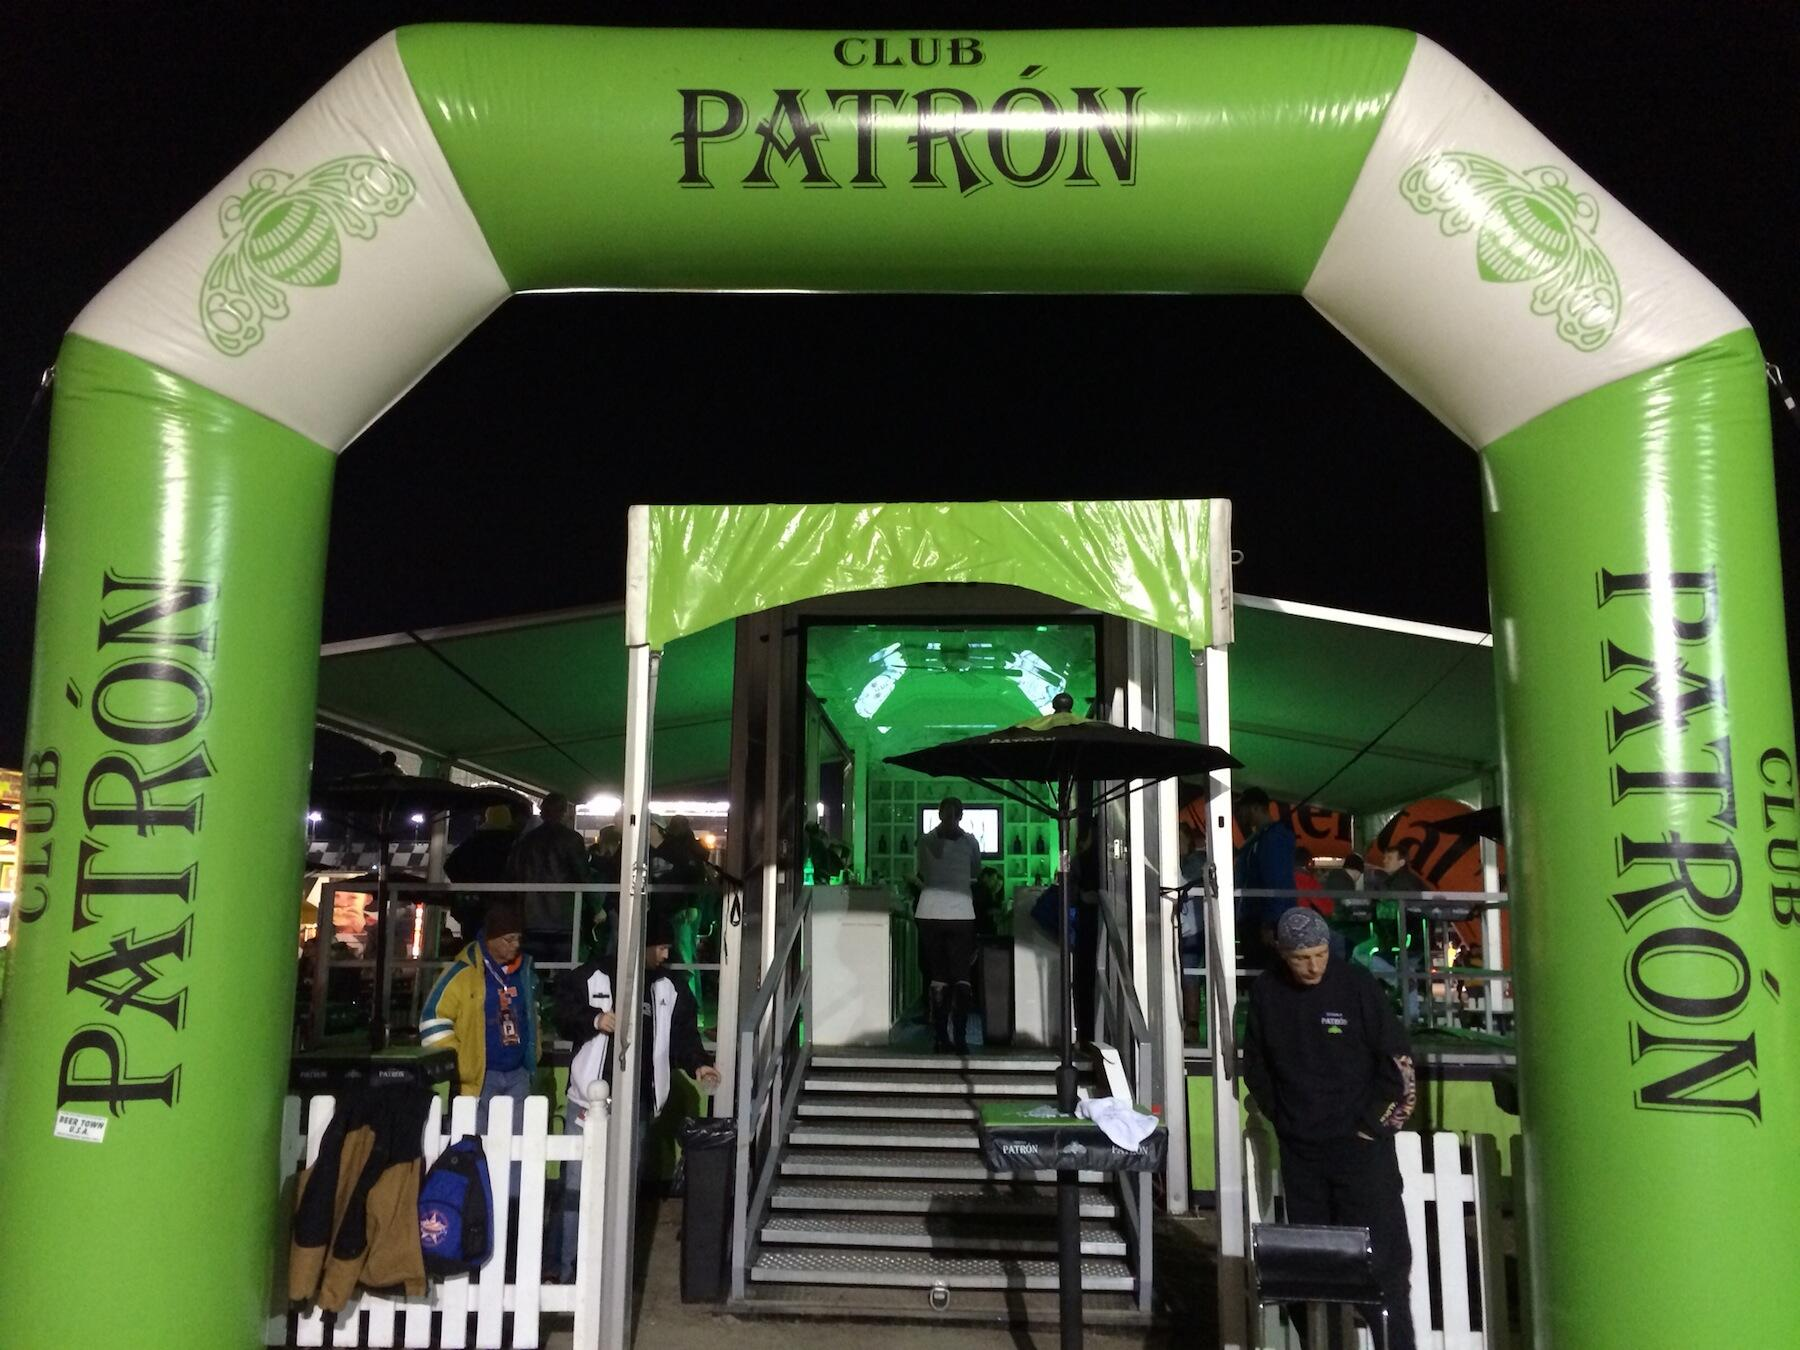 Late night? Swing by Club Patron for drinks during the race! #Rolex24 http://t.co/nQyQIOJR6e